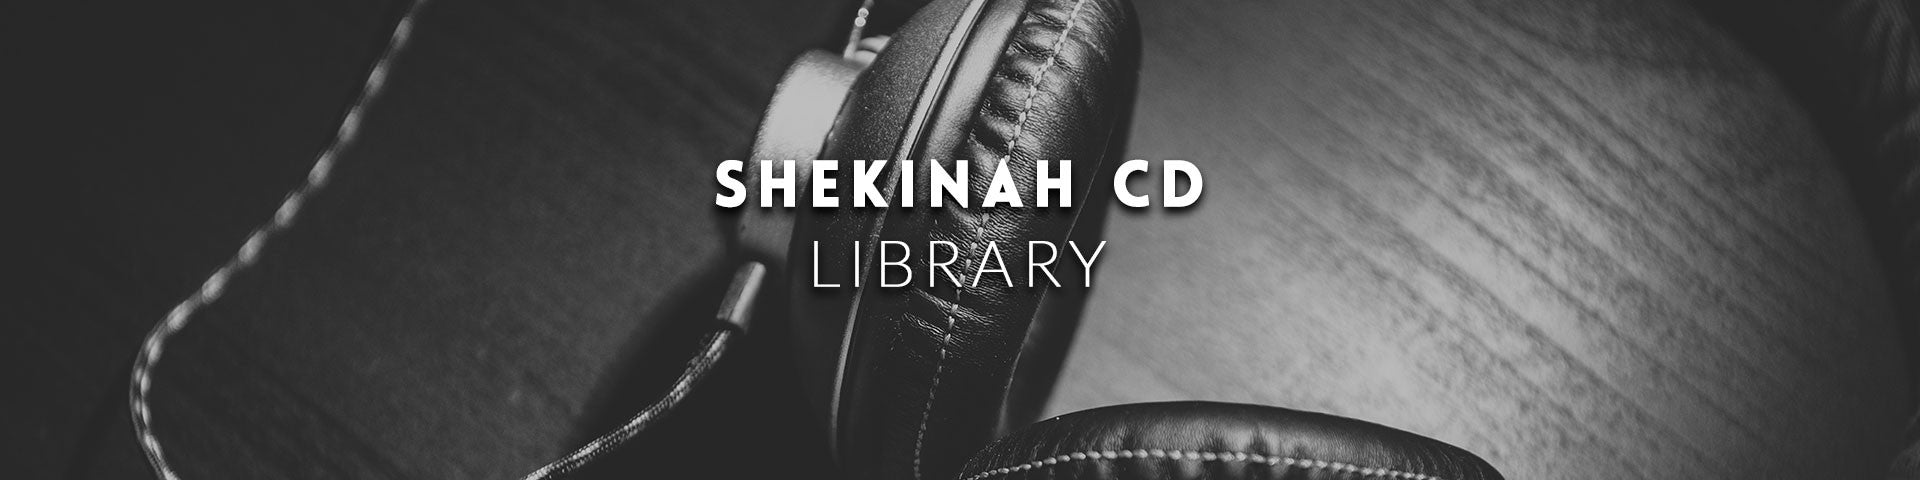 collections/Shekinah-CD.jpg